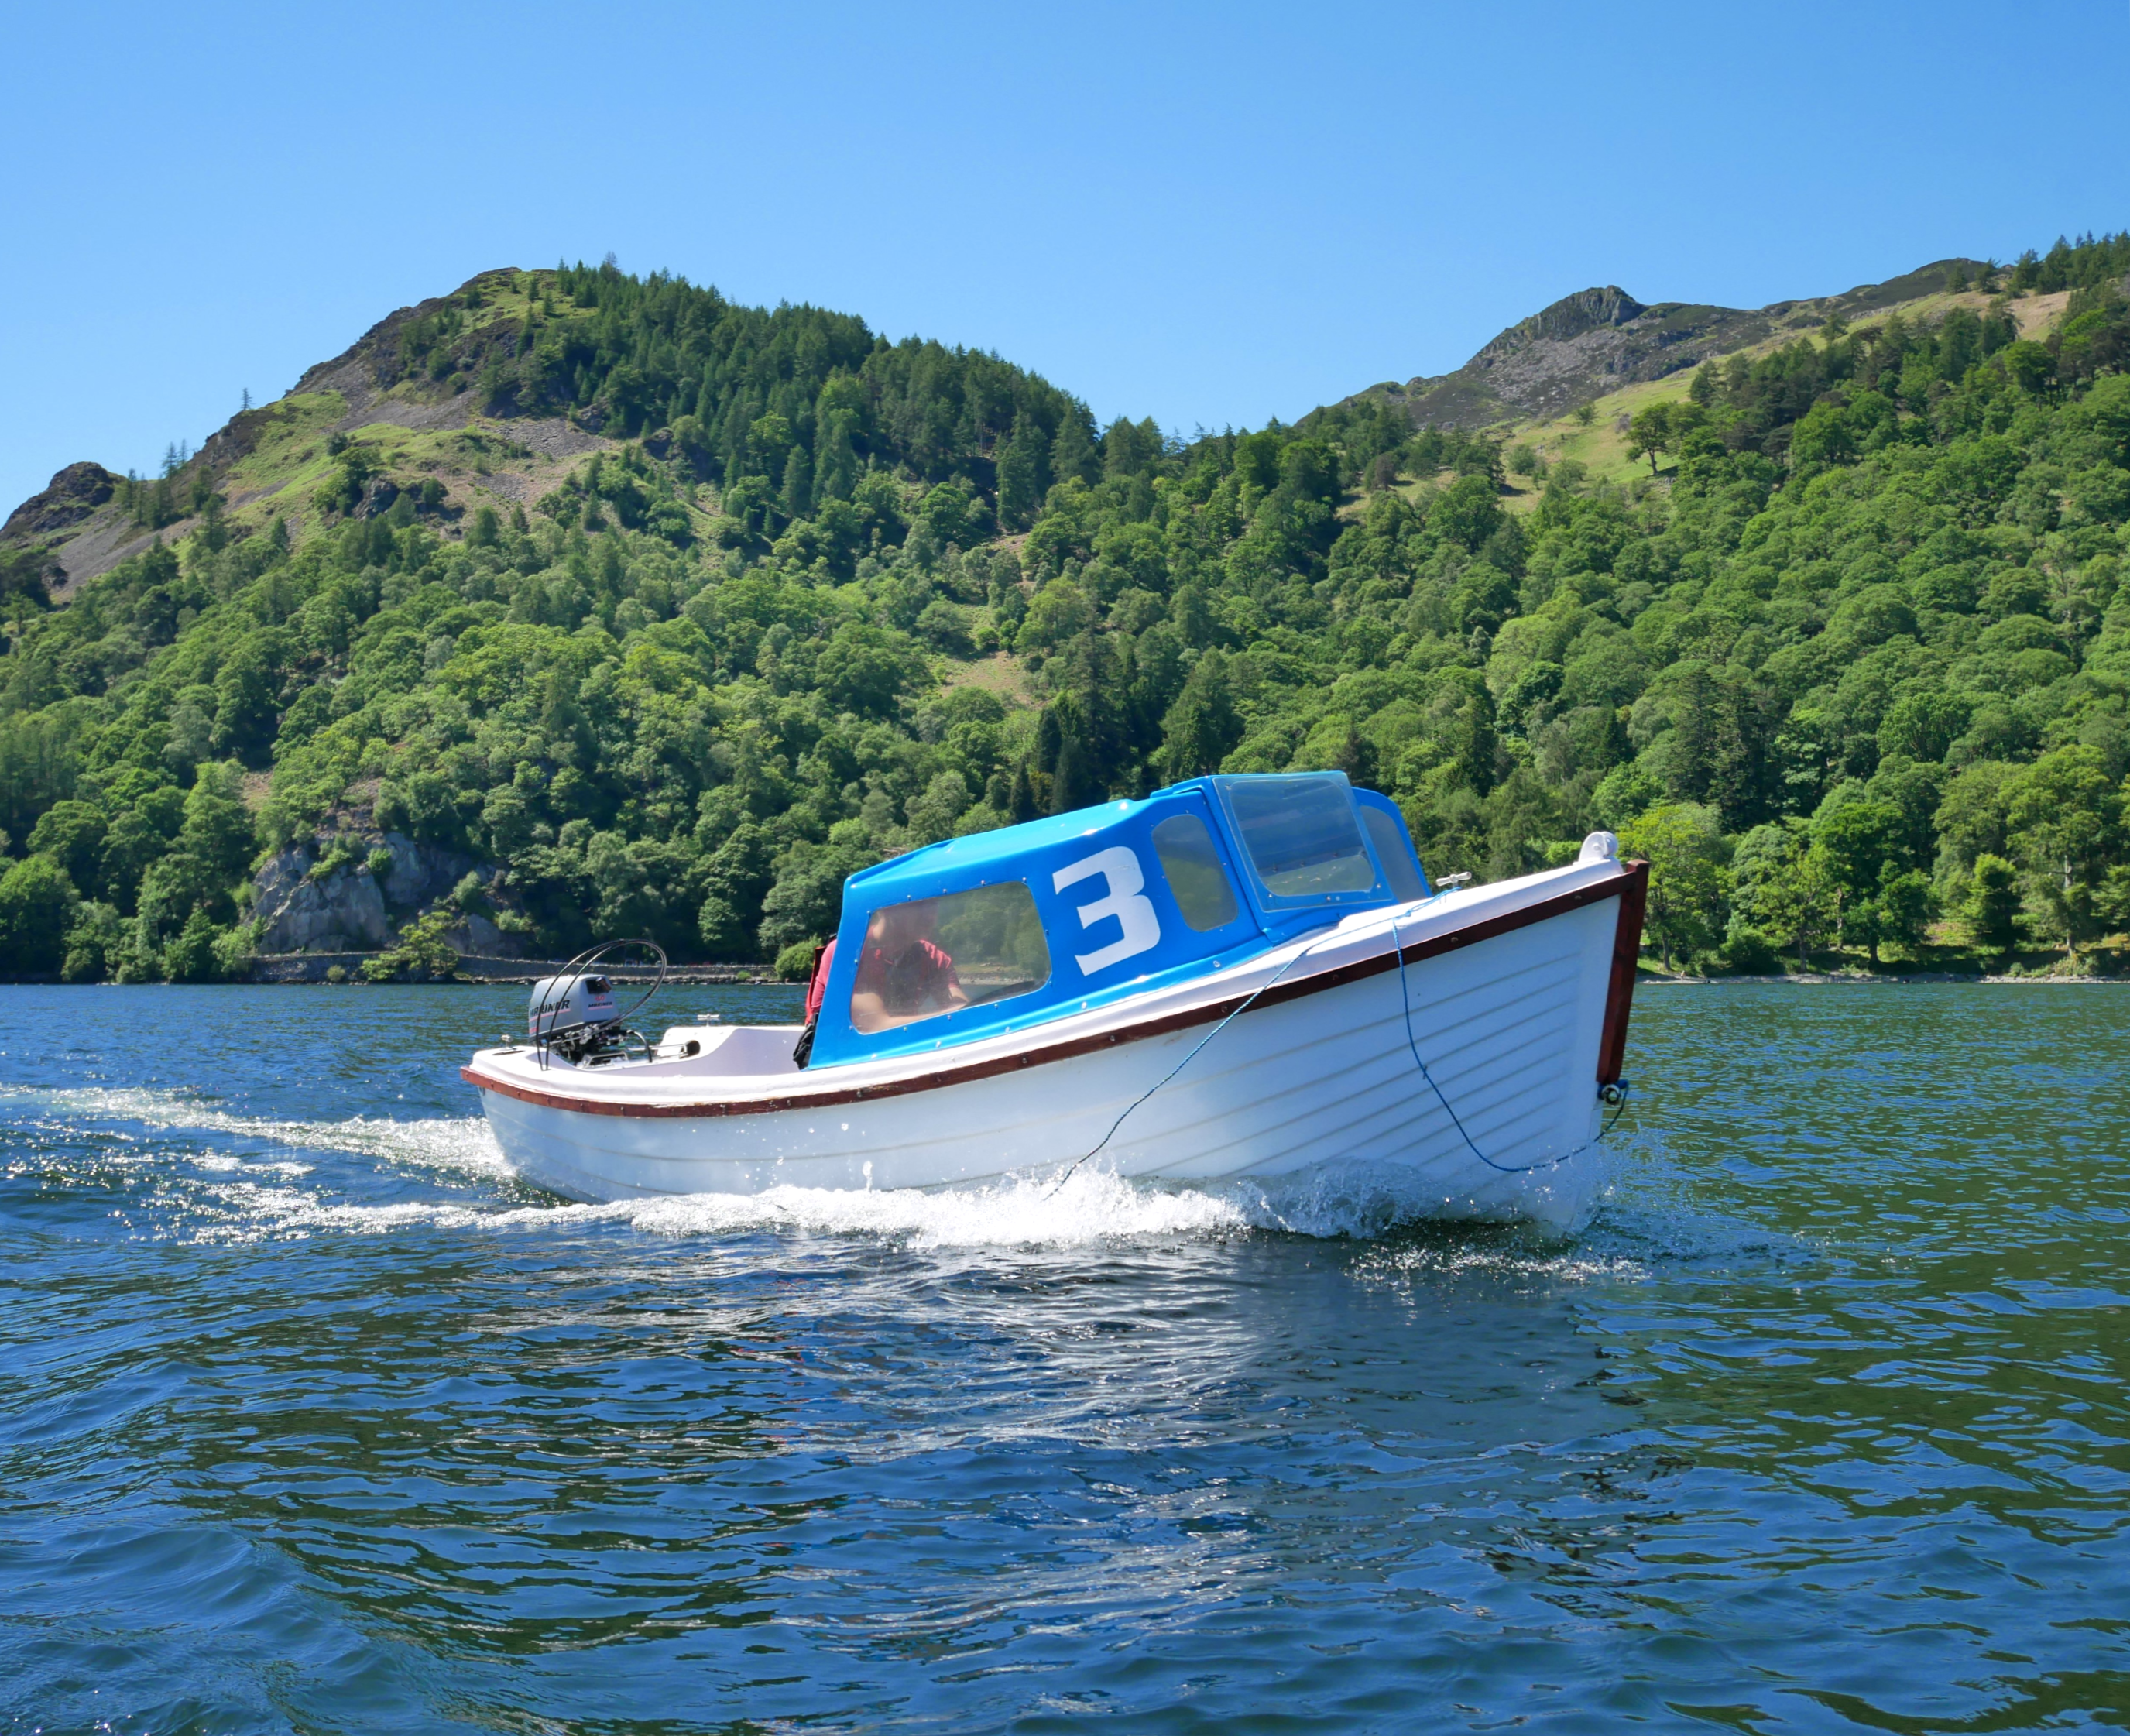 Motor boat backdropped by Glenridding Dodd & Heron Pike